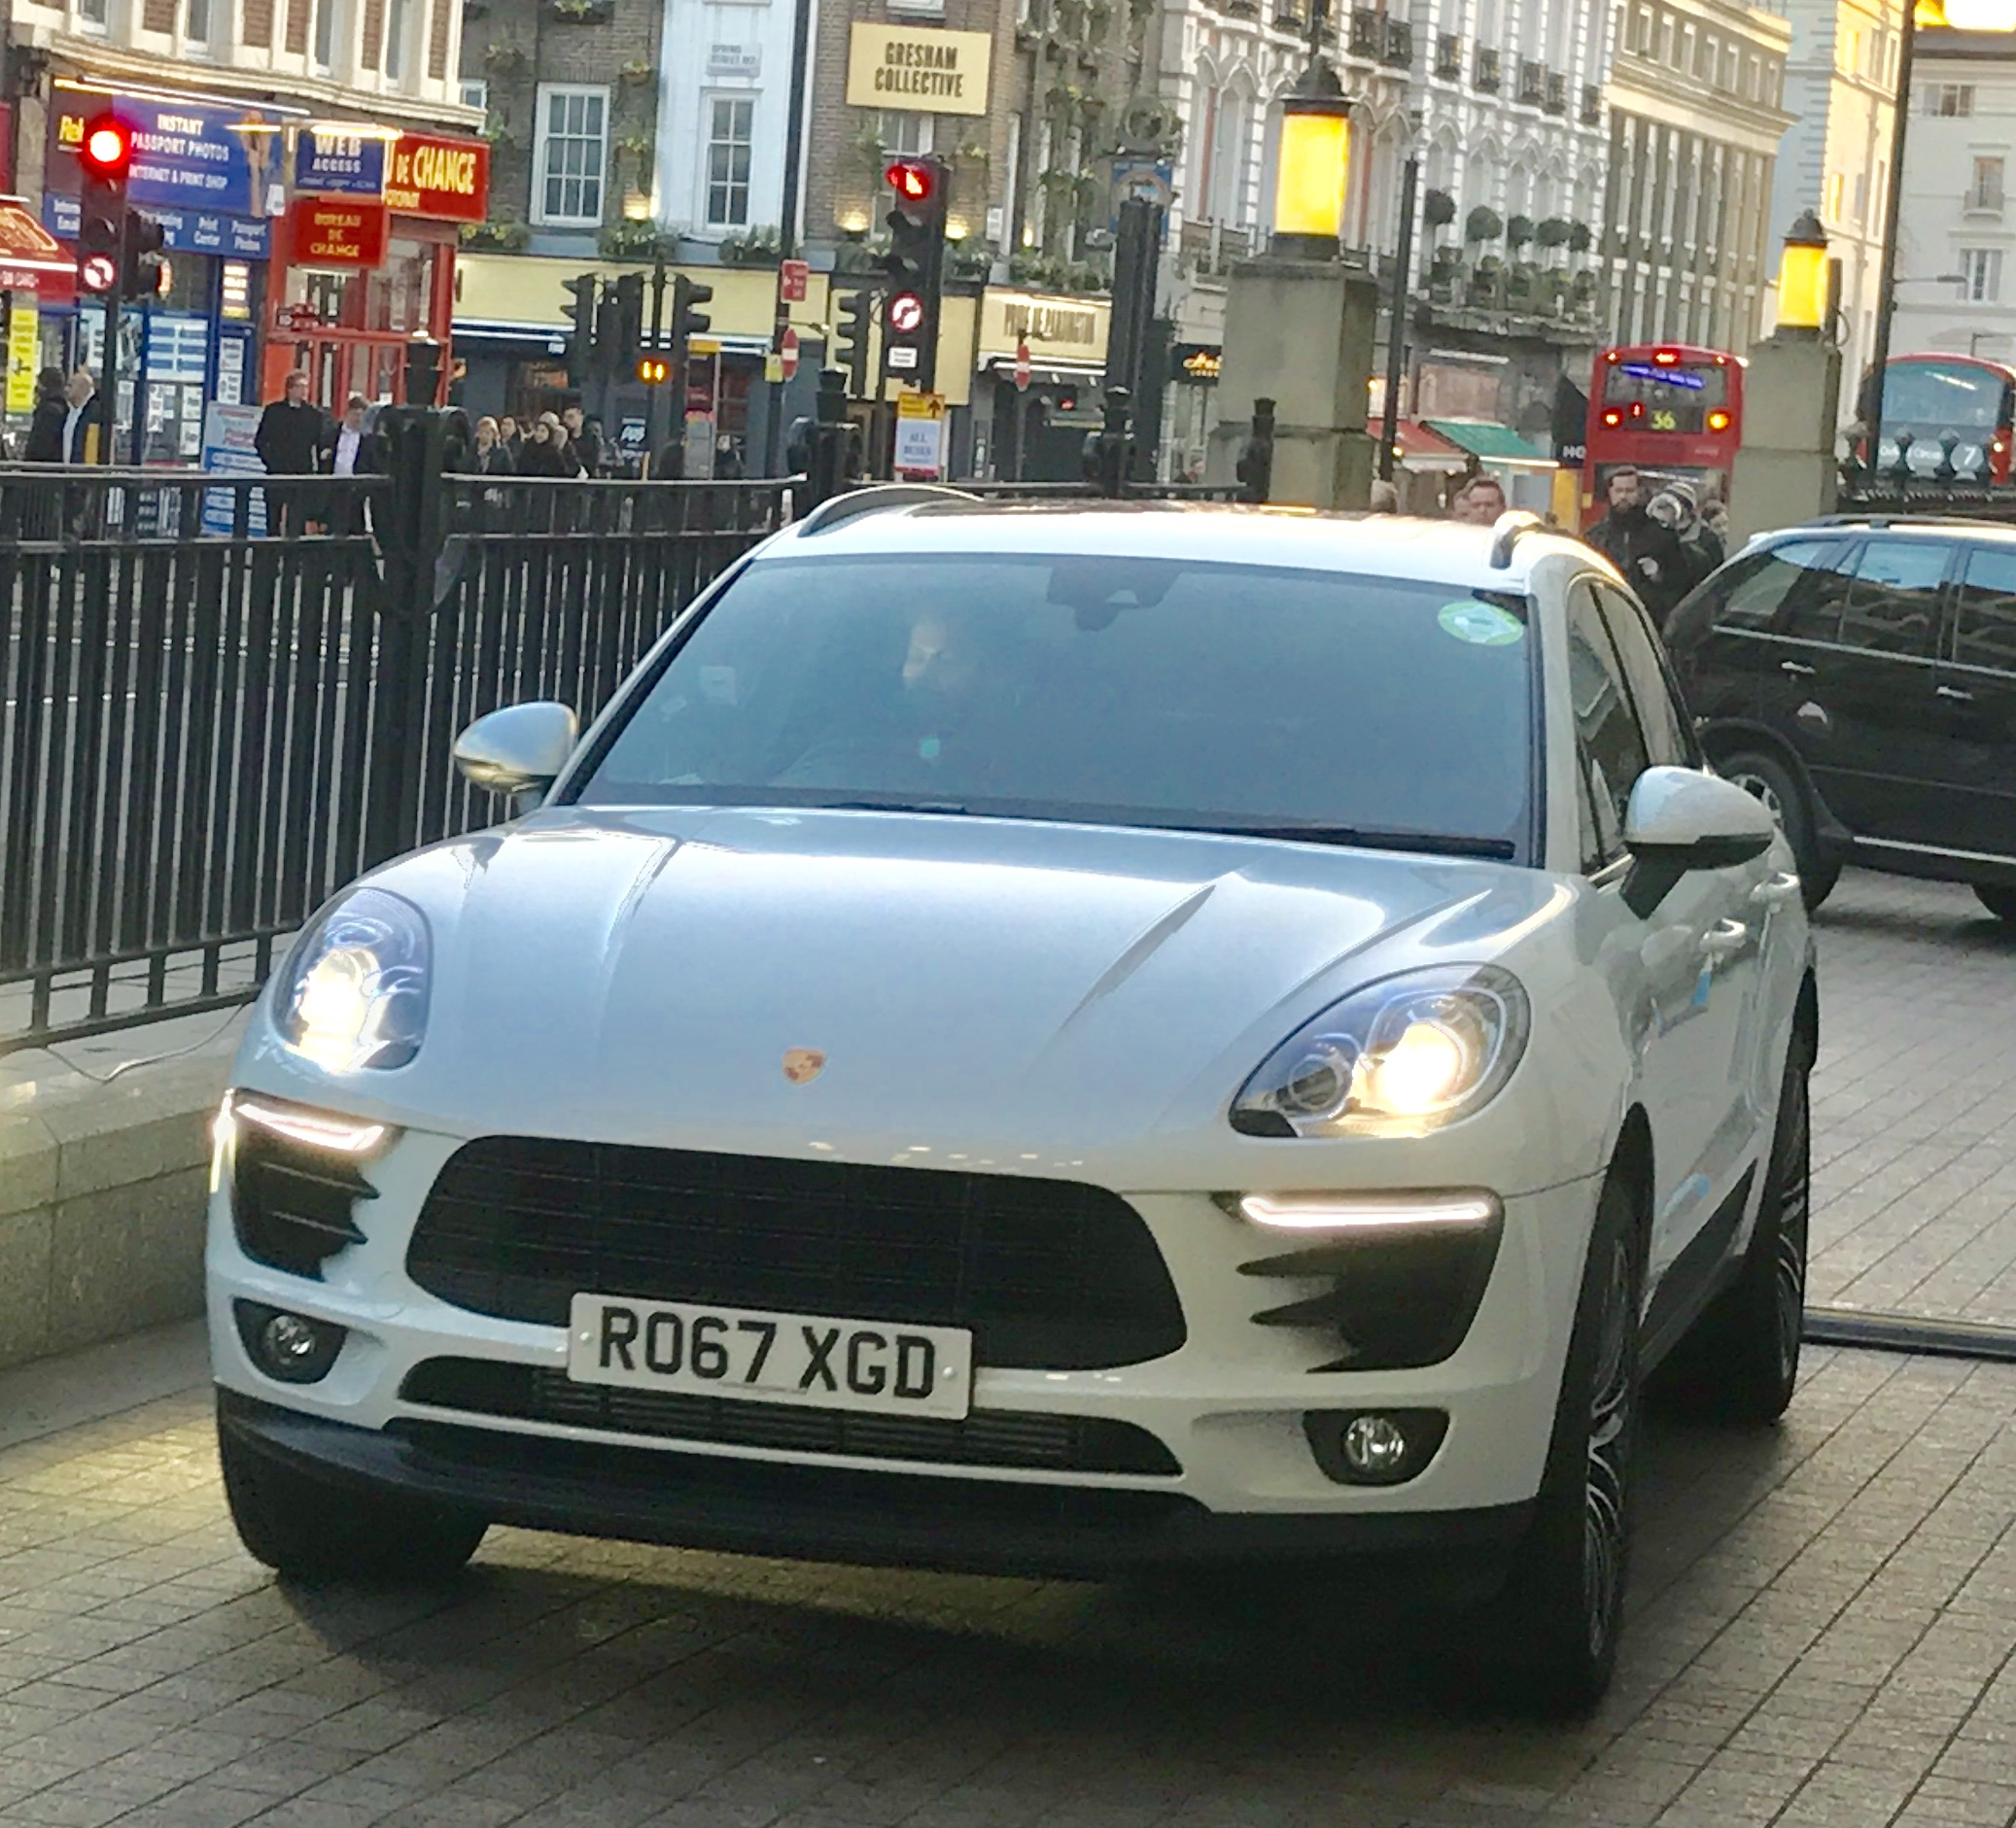 Gett Porsche taxi arrives for review